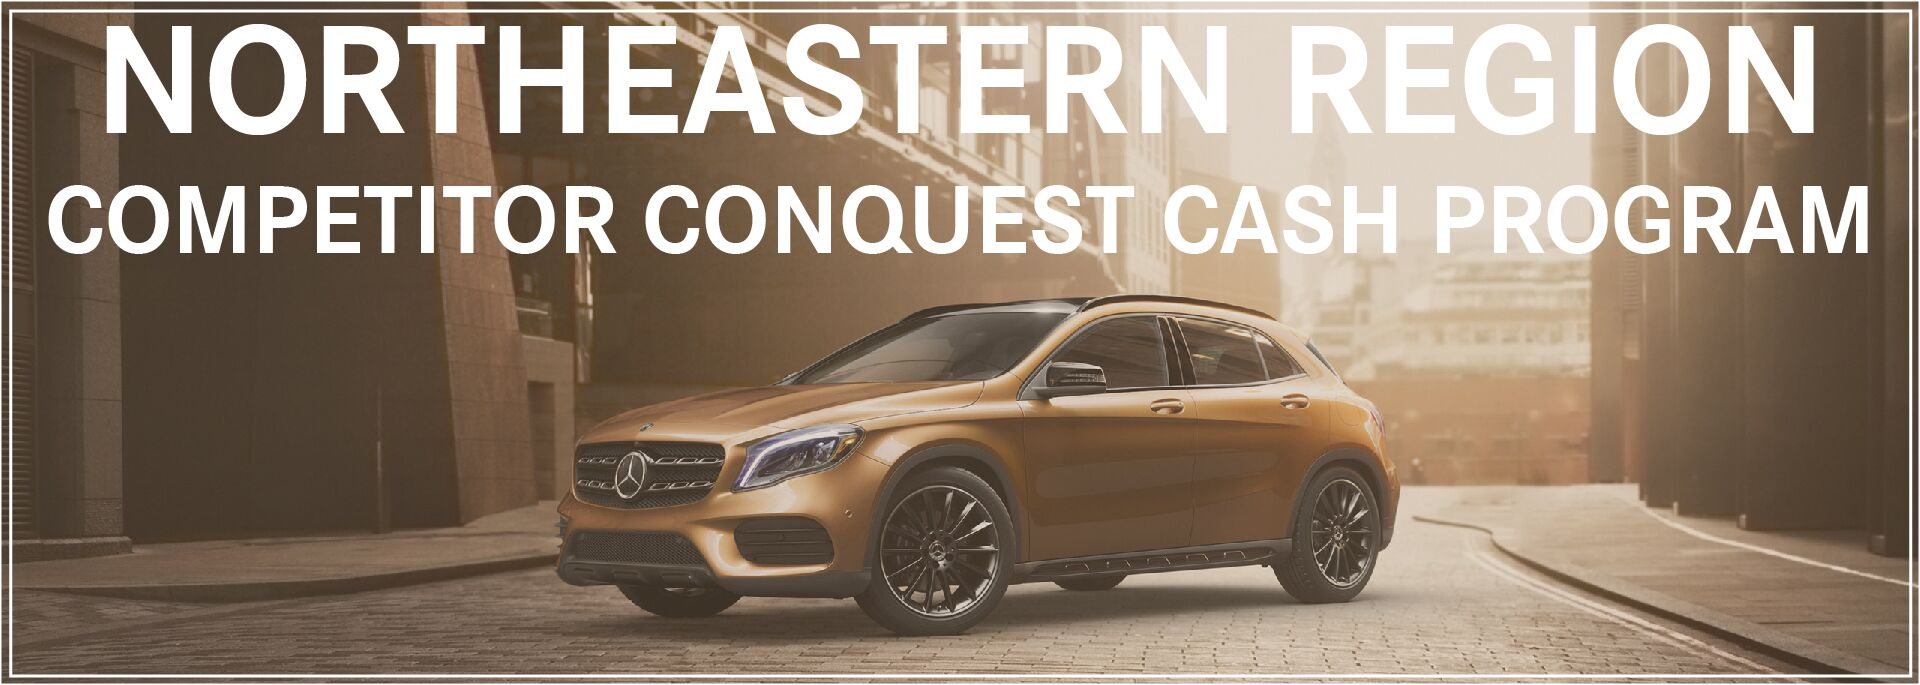 Northeast region competitor conquest cash program for Mercedes benz of west chester